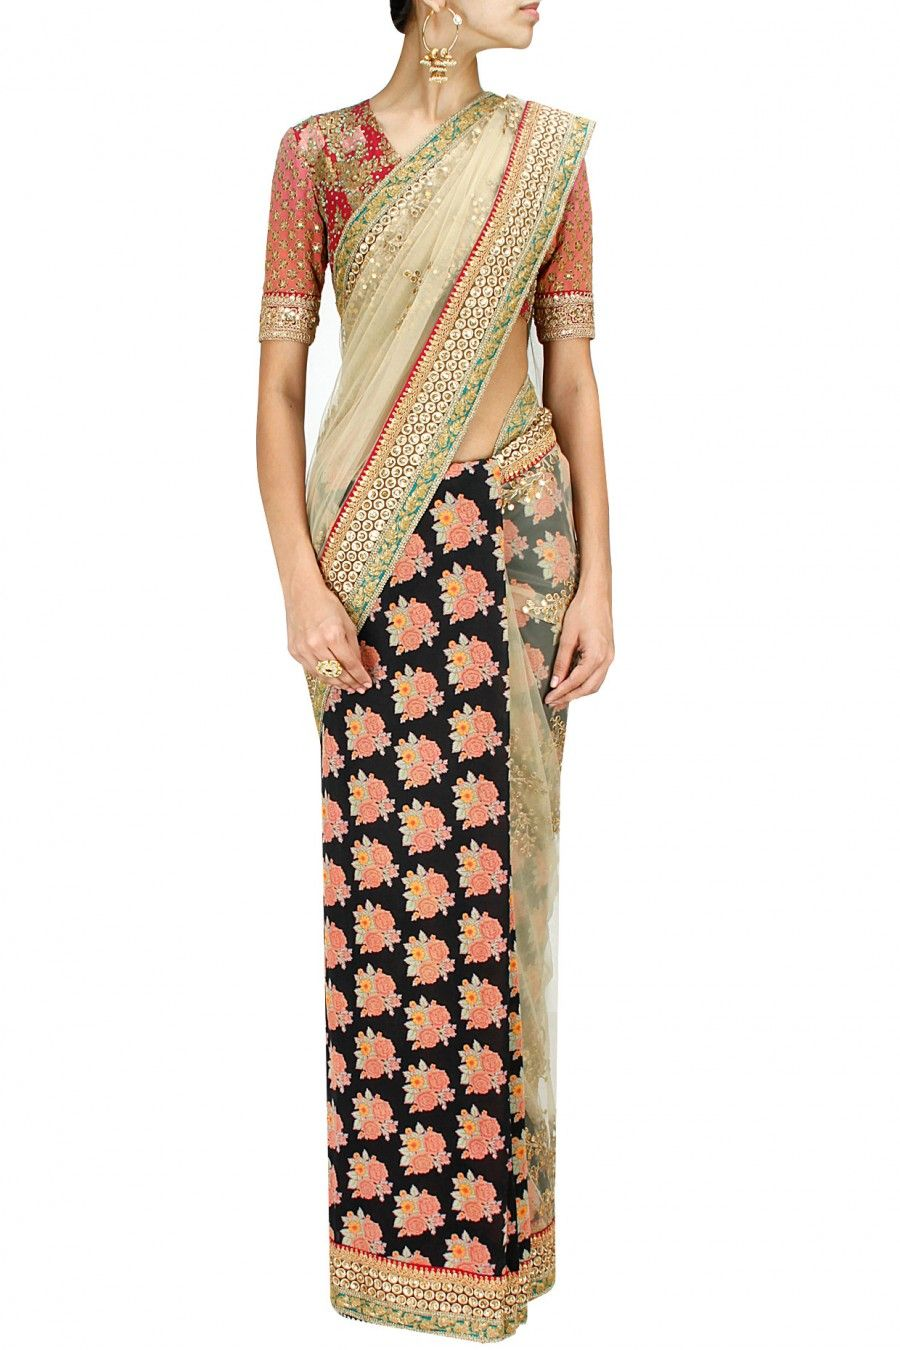 2612a6b2122f SABYASACHI - 2014 Floral printed and embroidered tulle sari with gulmarg  flowers blouse via perniaspopupshop.com